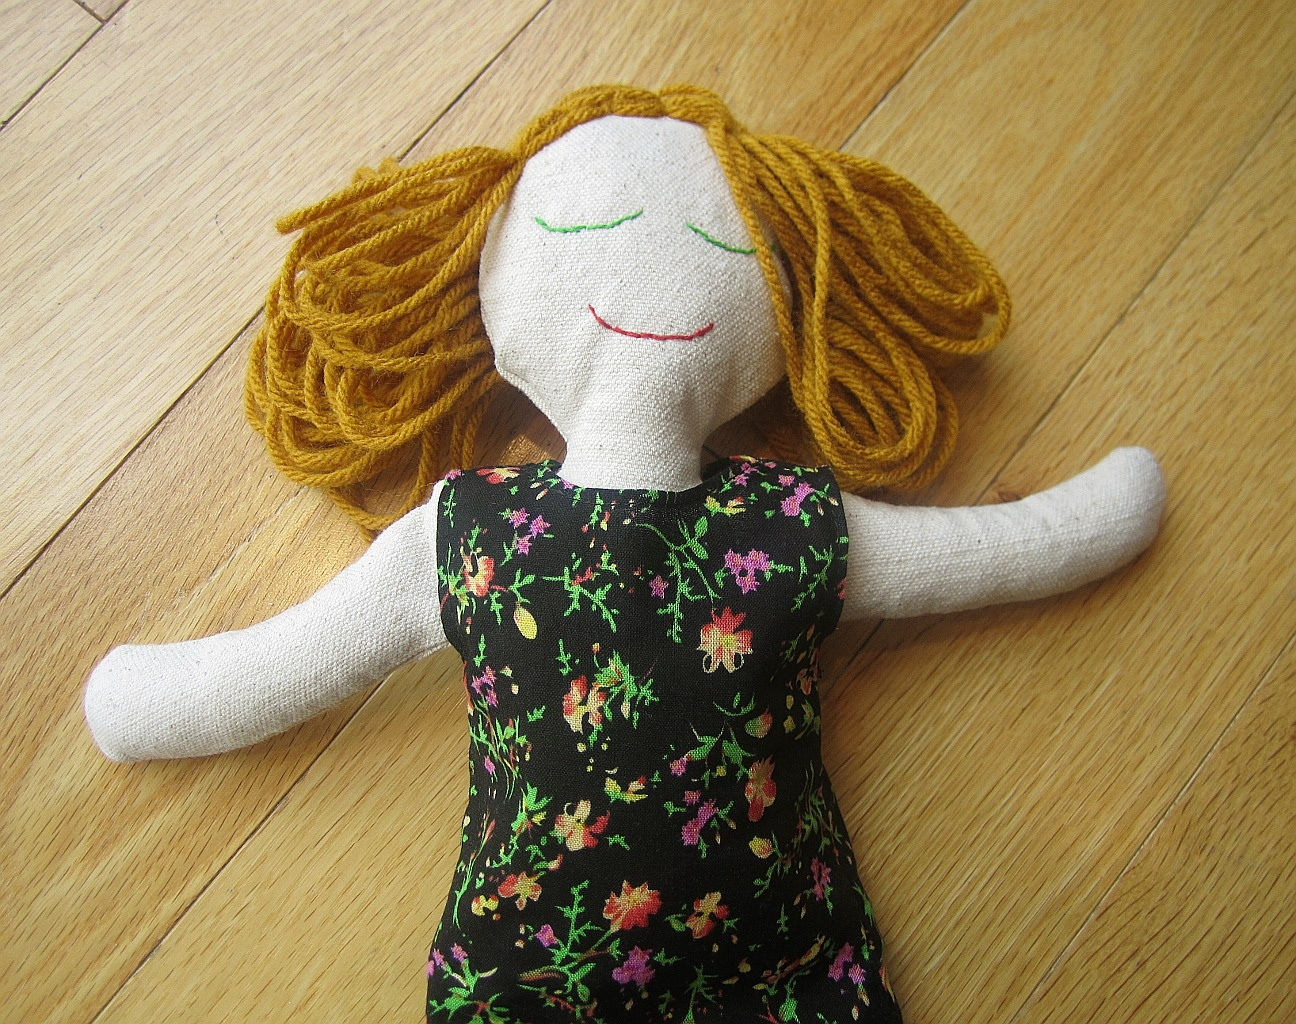 Rag Doll Free Sewing Pattern And Instructions – Amie Scott - Free Printable Rag Doll Patterns